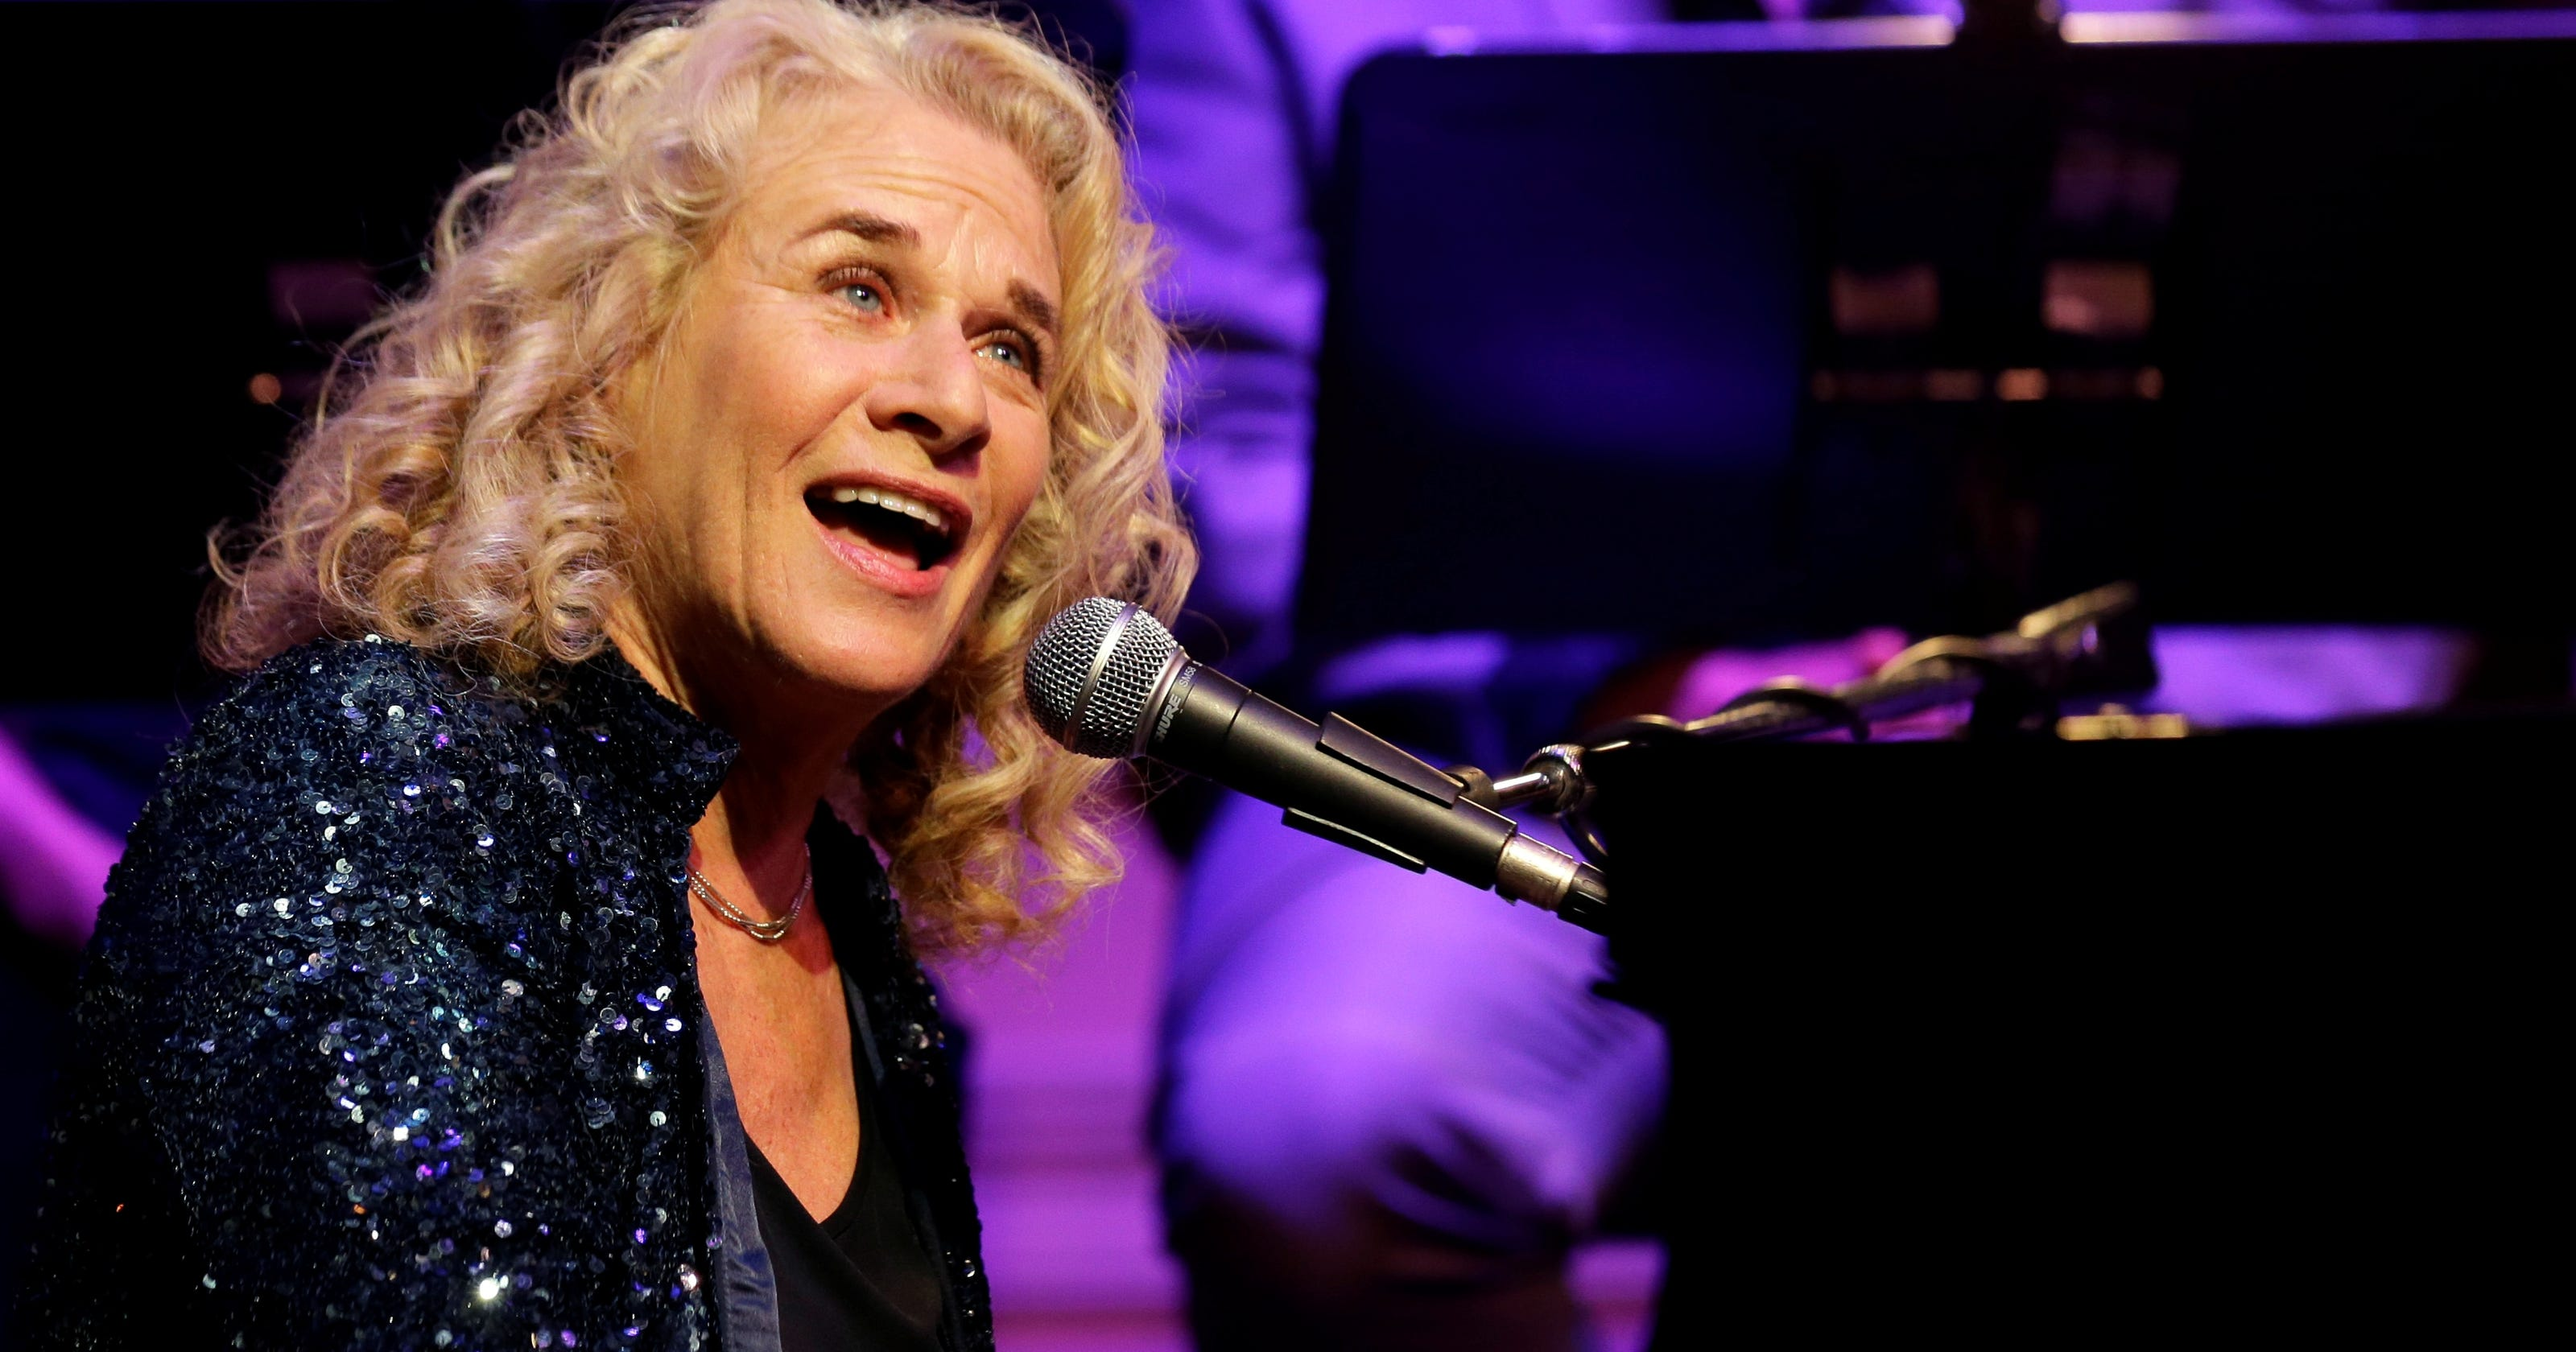 Carole King On Gershwin Prize Do Not Make Me Cry